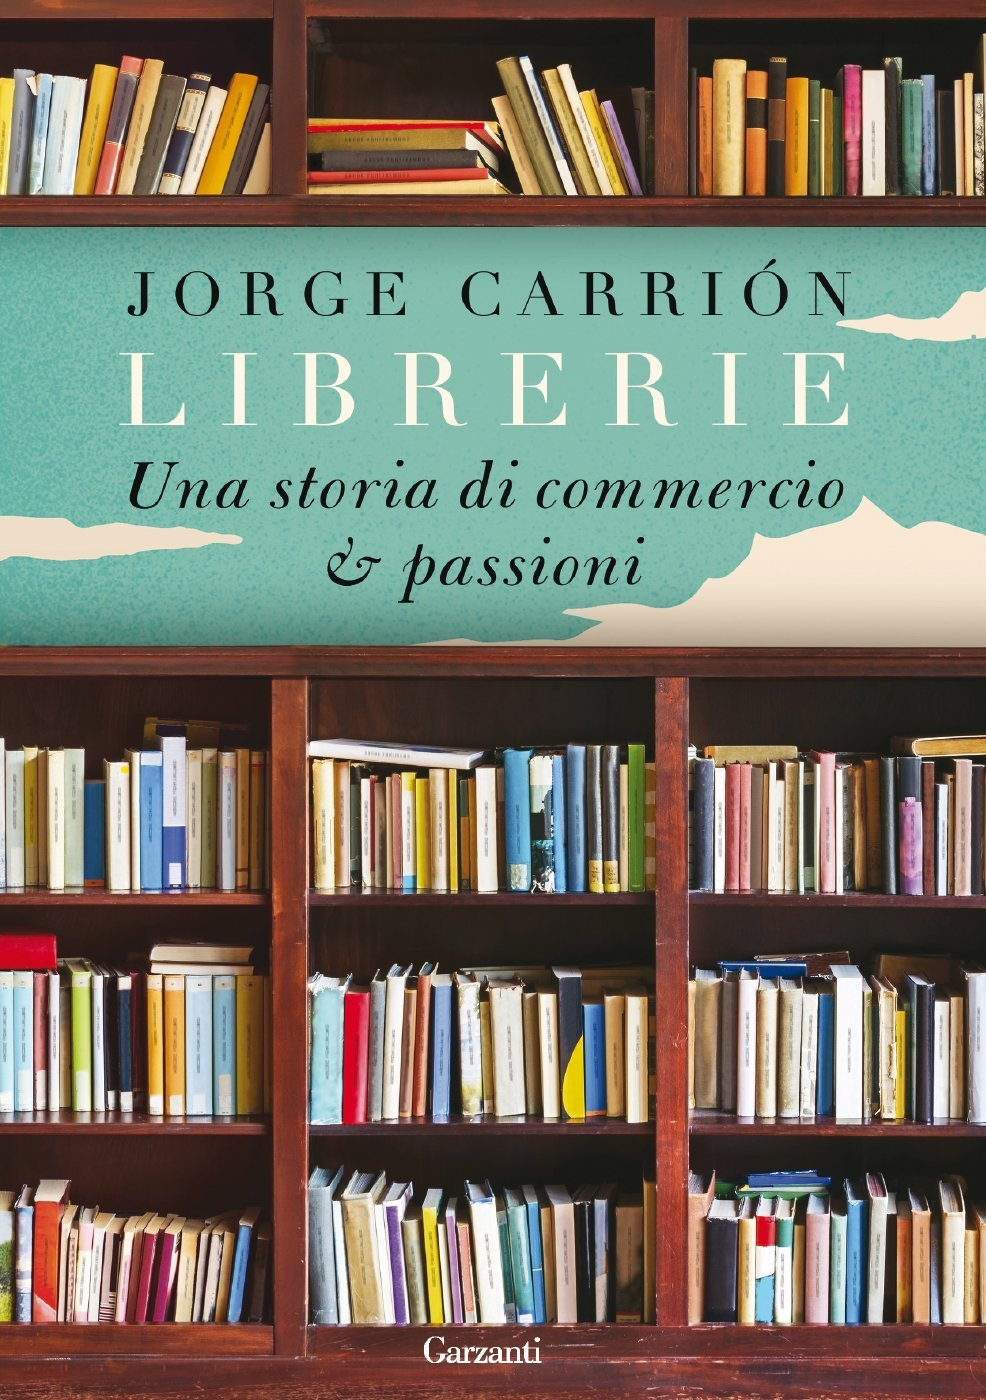 Jorge Carrion Llibrerie